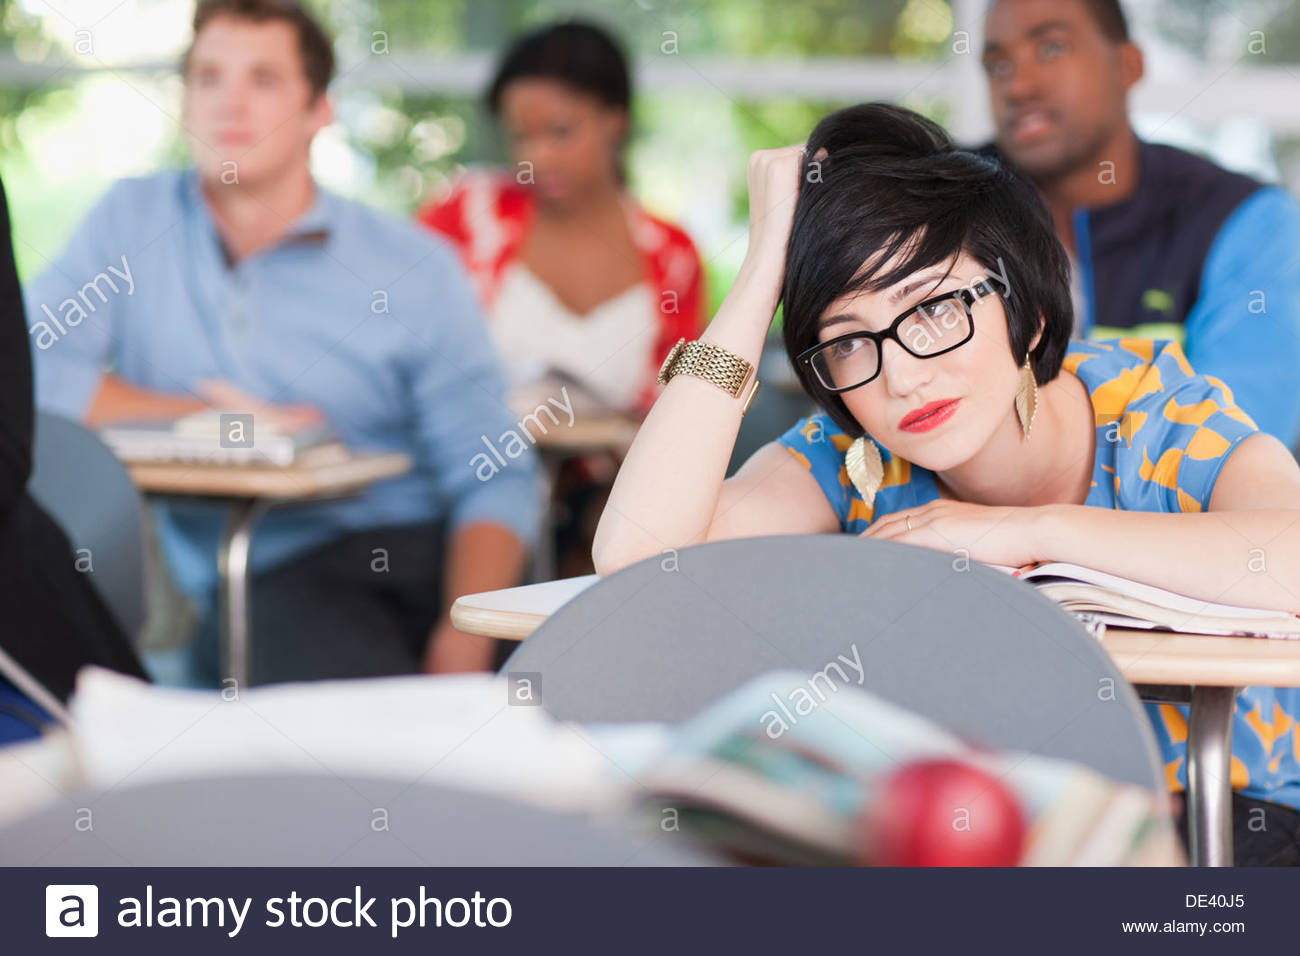 Students in classroom - Stock Image